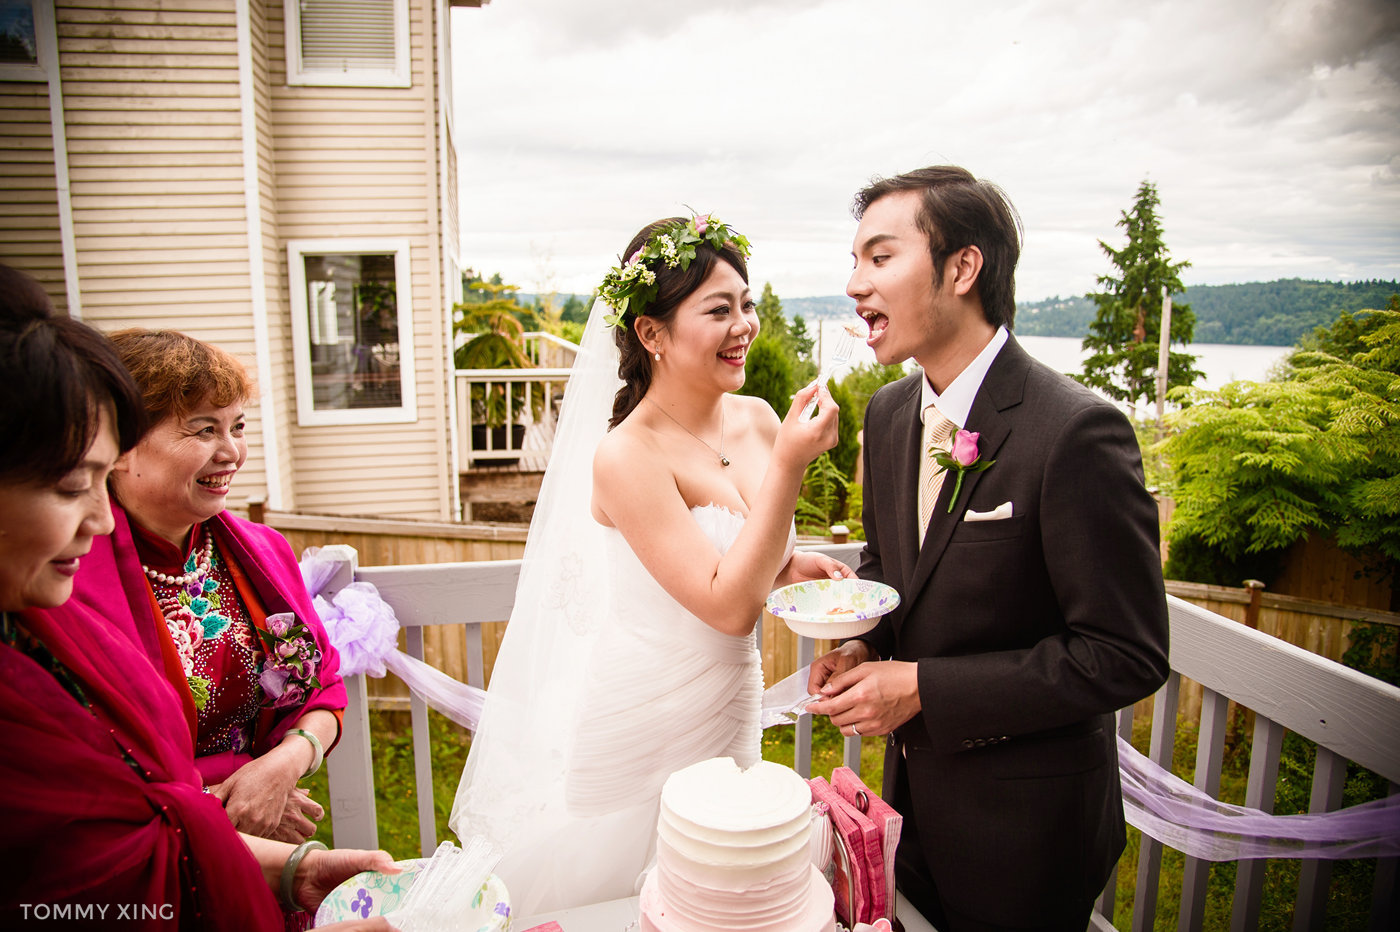 Seattle Wedding and pre wedding Los Angeles Tommy Xing Photography 西雅图洛杉矶旧金山婚礼婚纱照摄影师 144.jpg